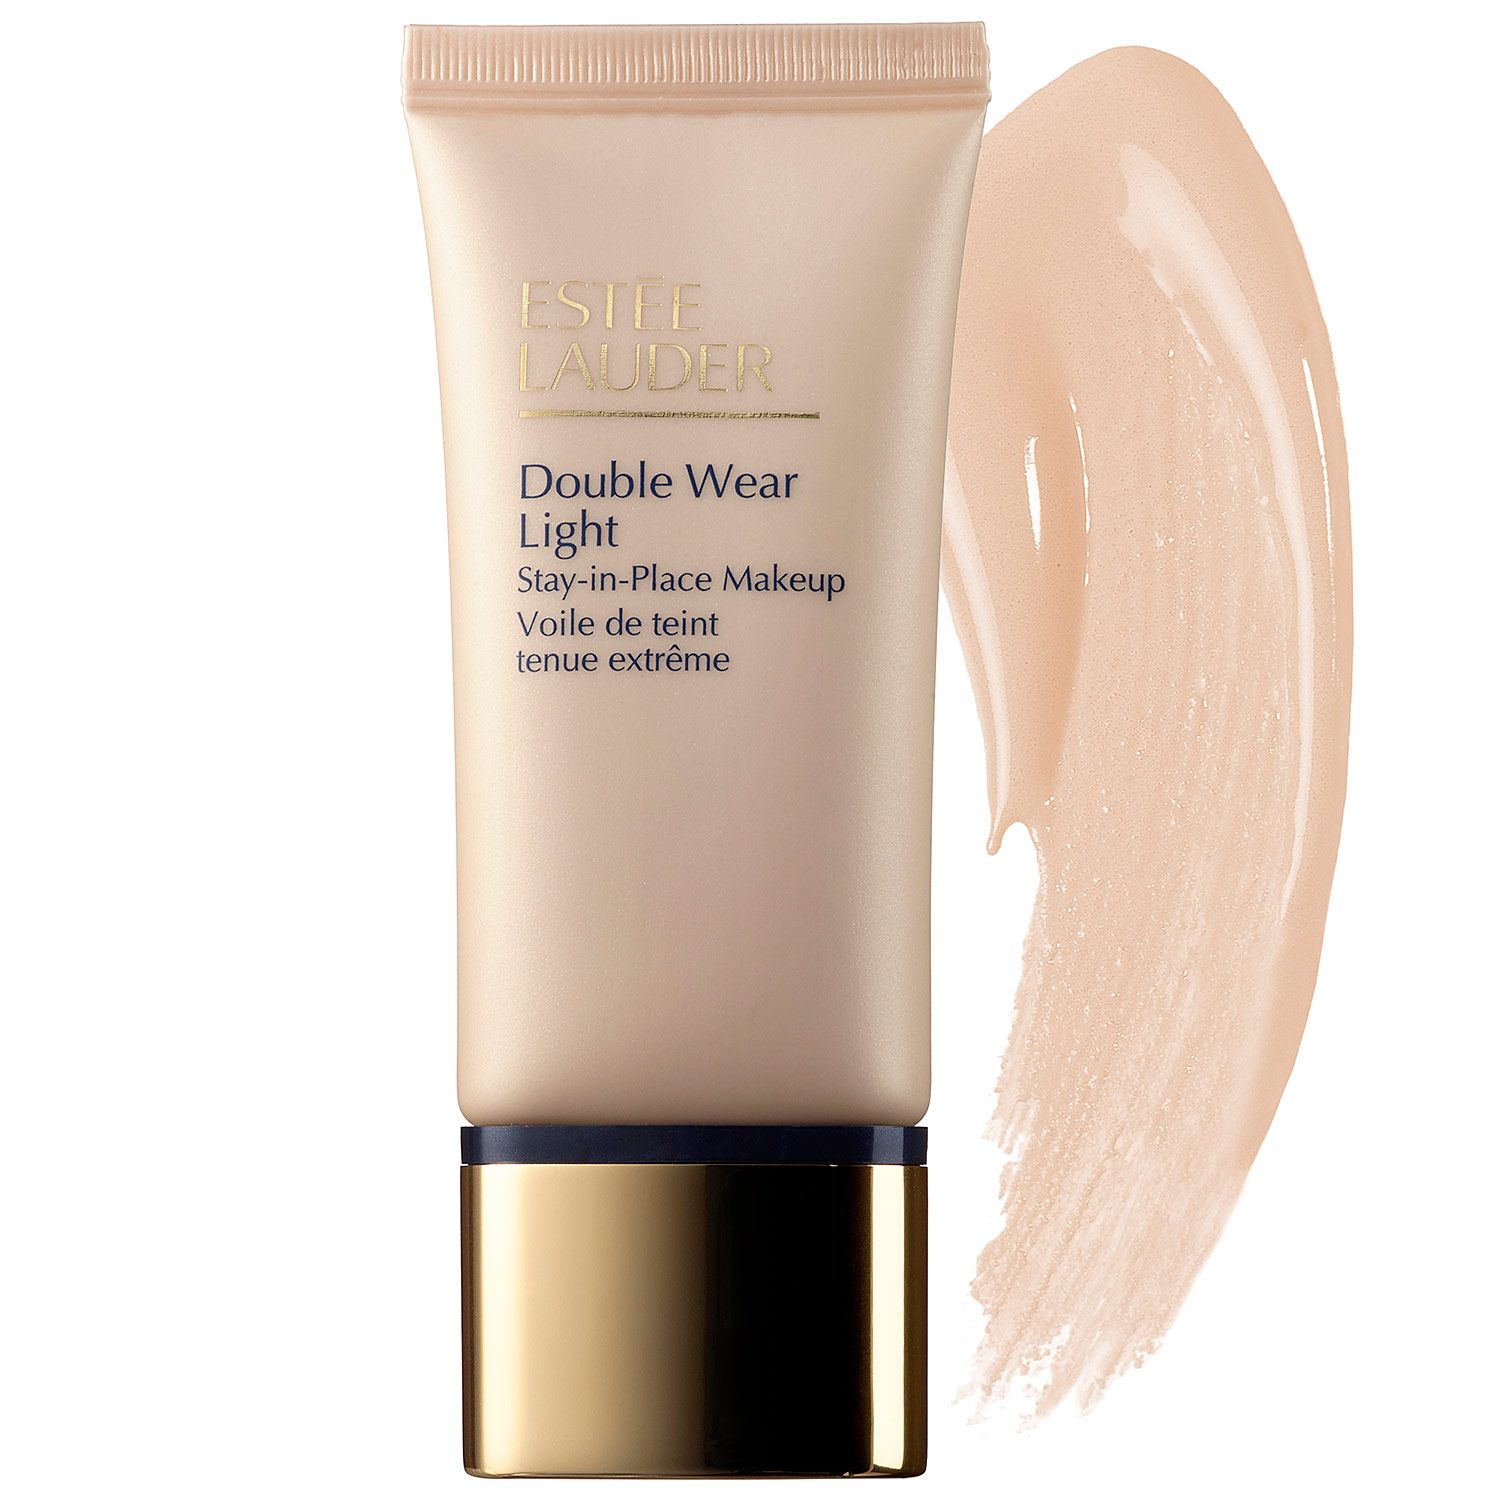 What it is A 15hour wear, lightweight foundation that